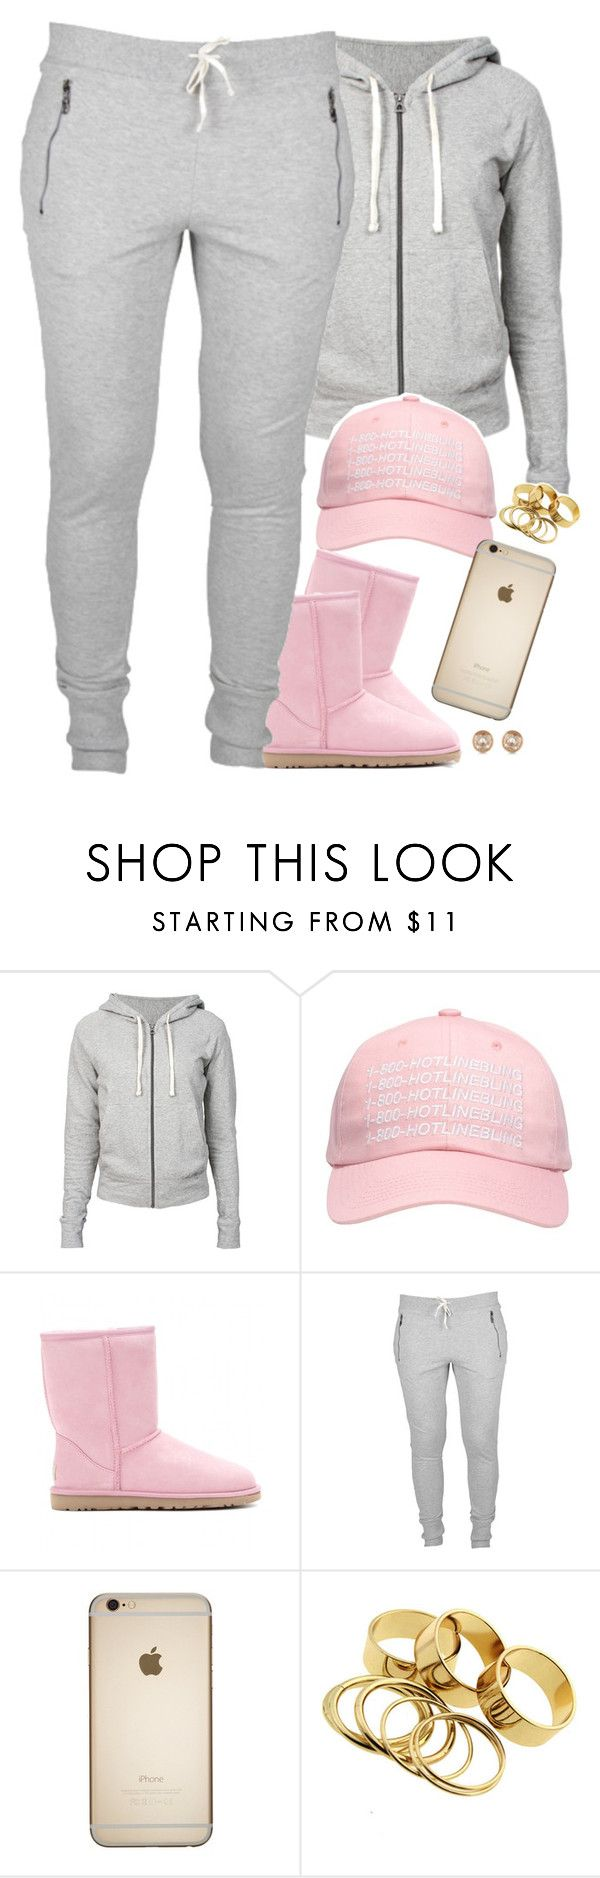 """""""1-800"""" by daisym0nste ❤ liked on Polyvore featuring James Perse, October's Very Own, UGG Australia and Michael Kors"""